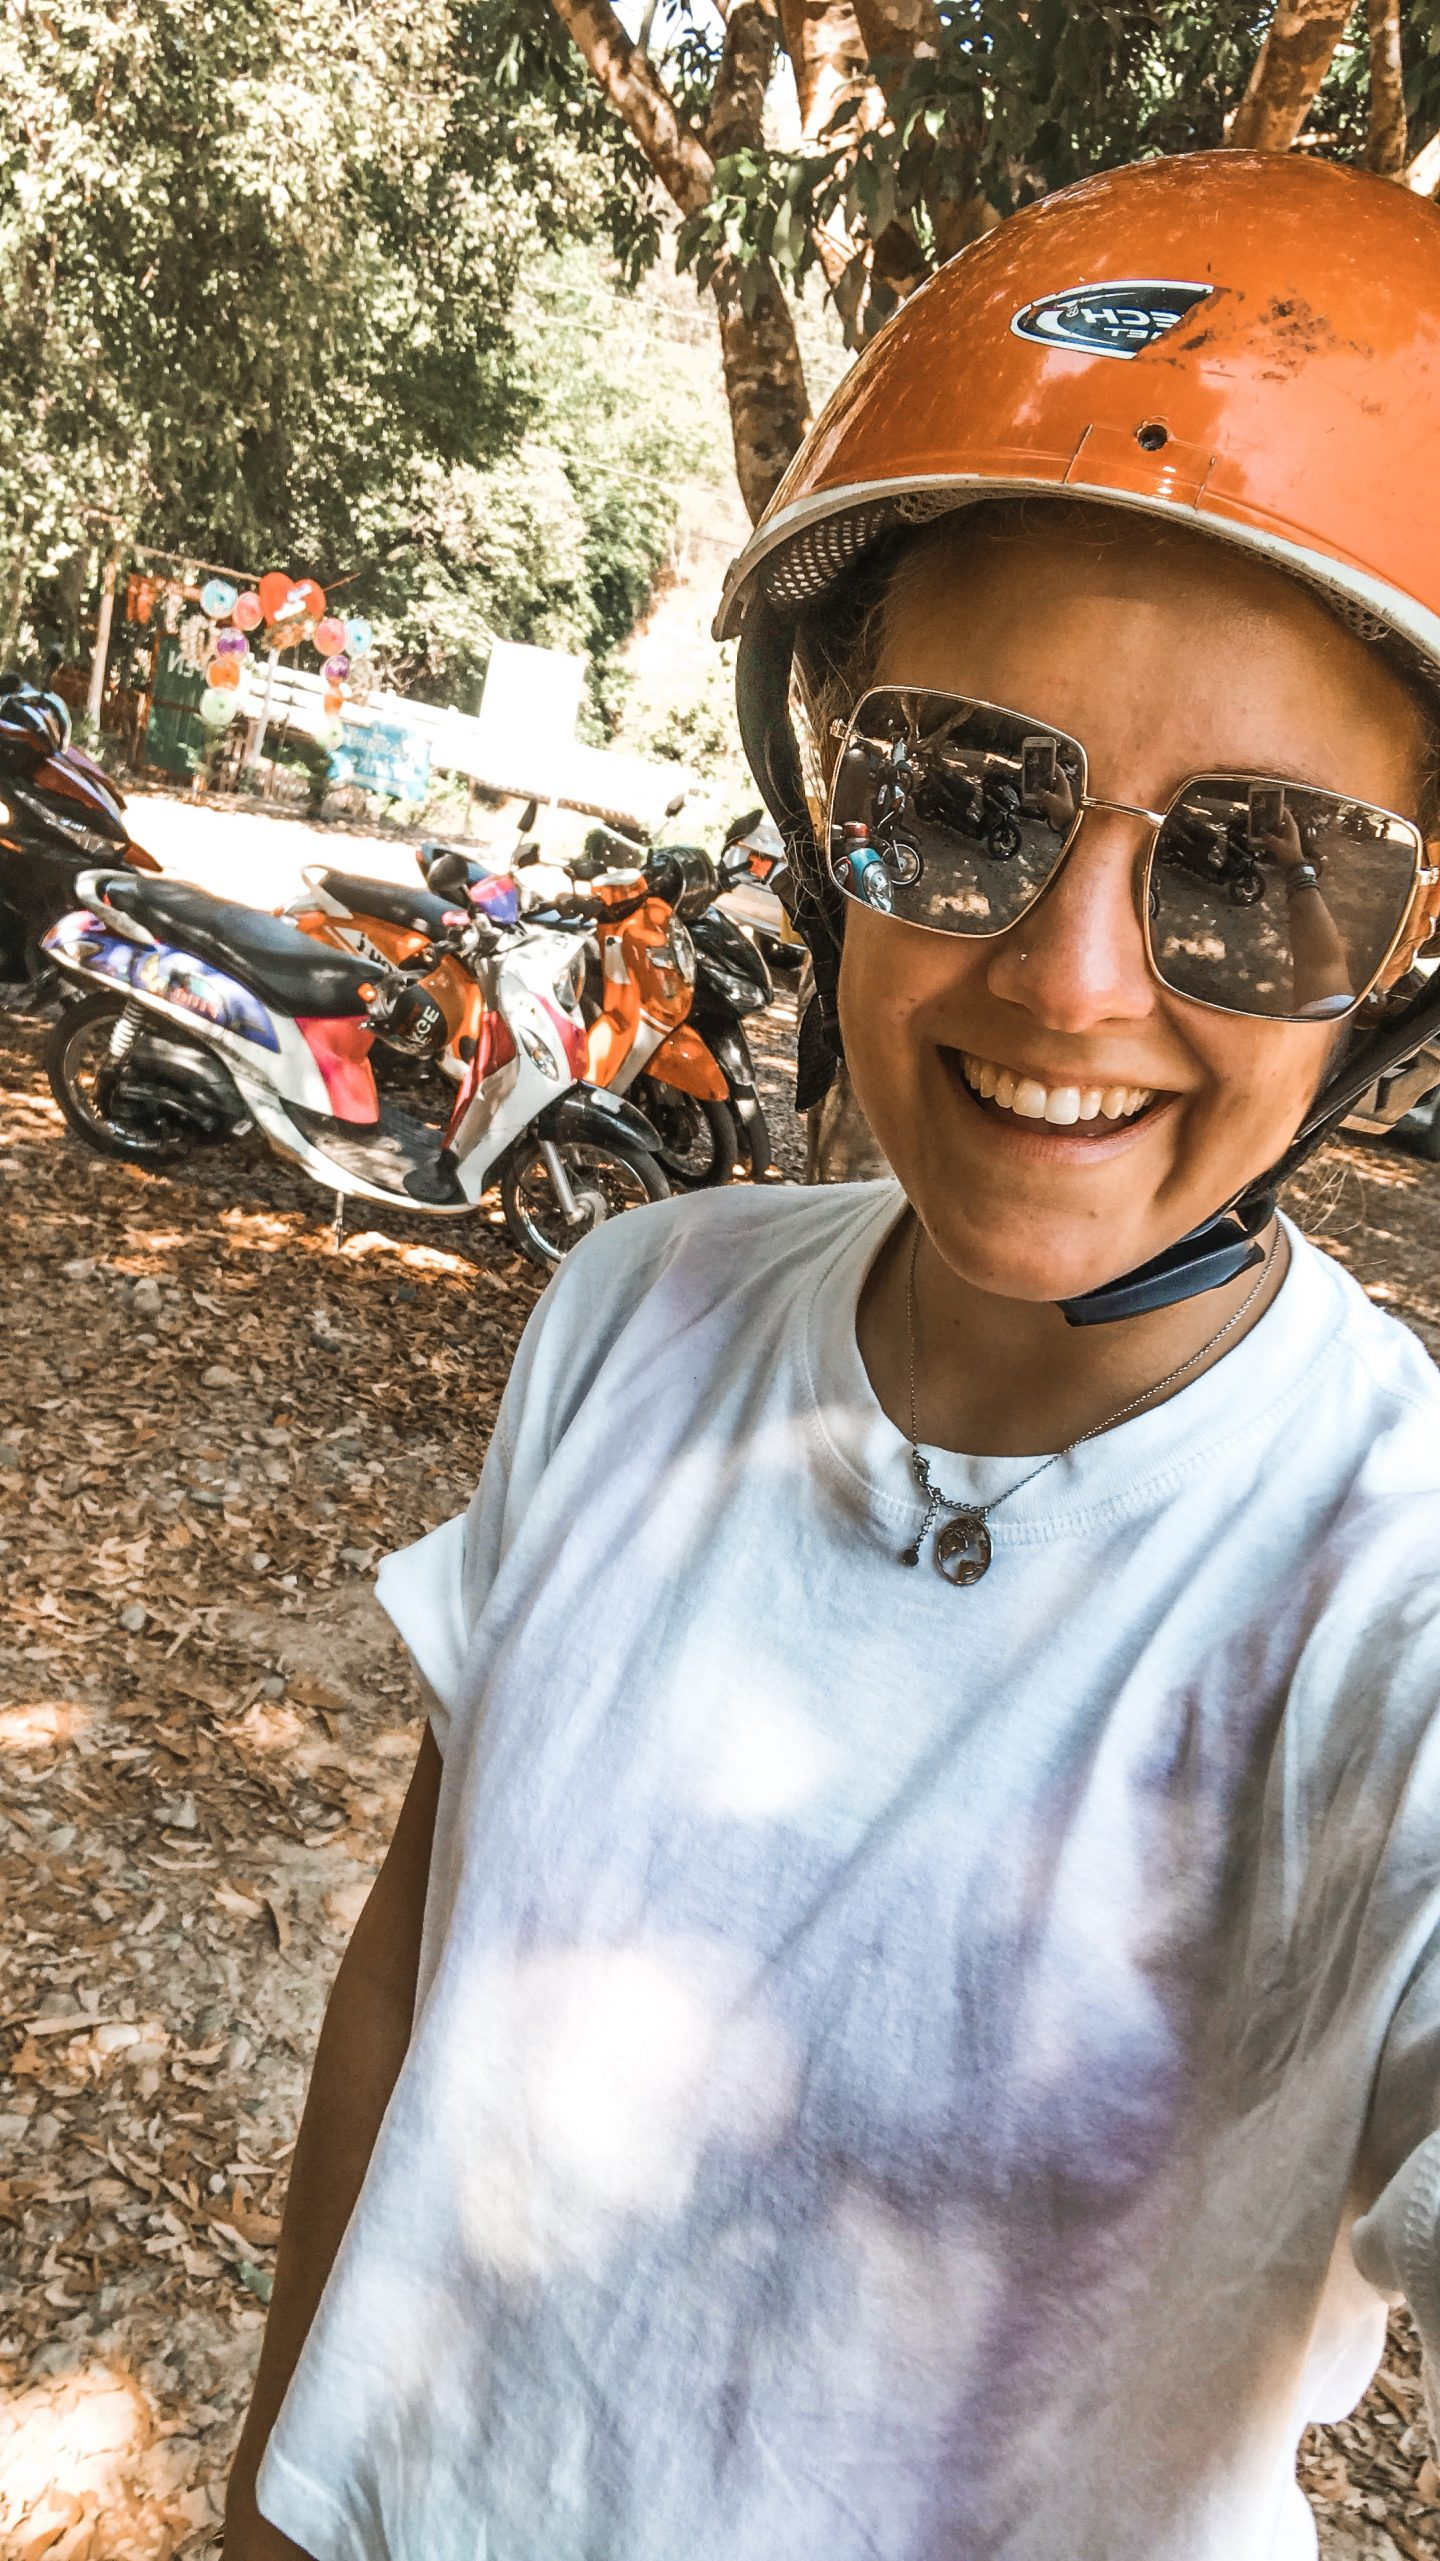 selfie with scooter, explore pai